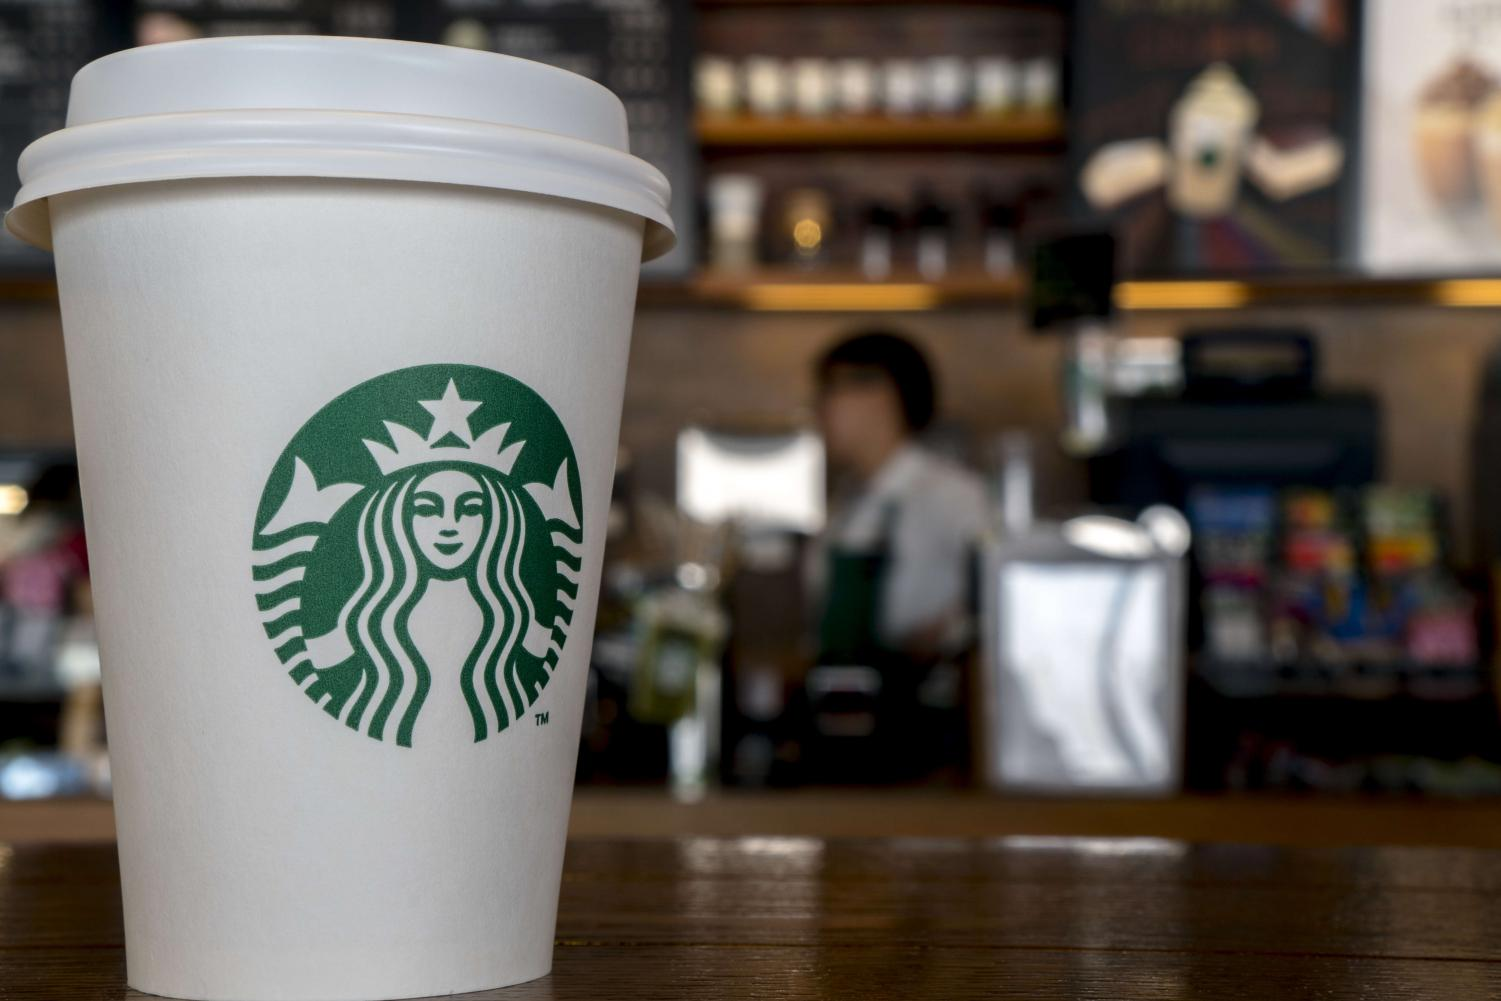 On Friday, May 18, Starbucks announced that everyone is welcome to utilize their shops; no purchase needed.